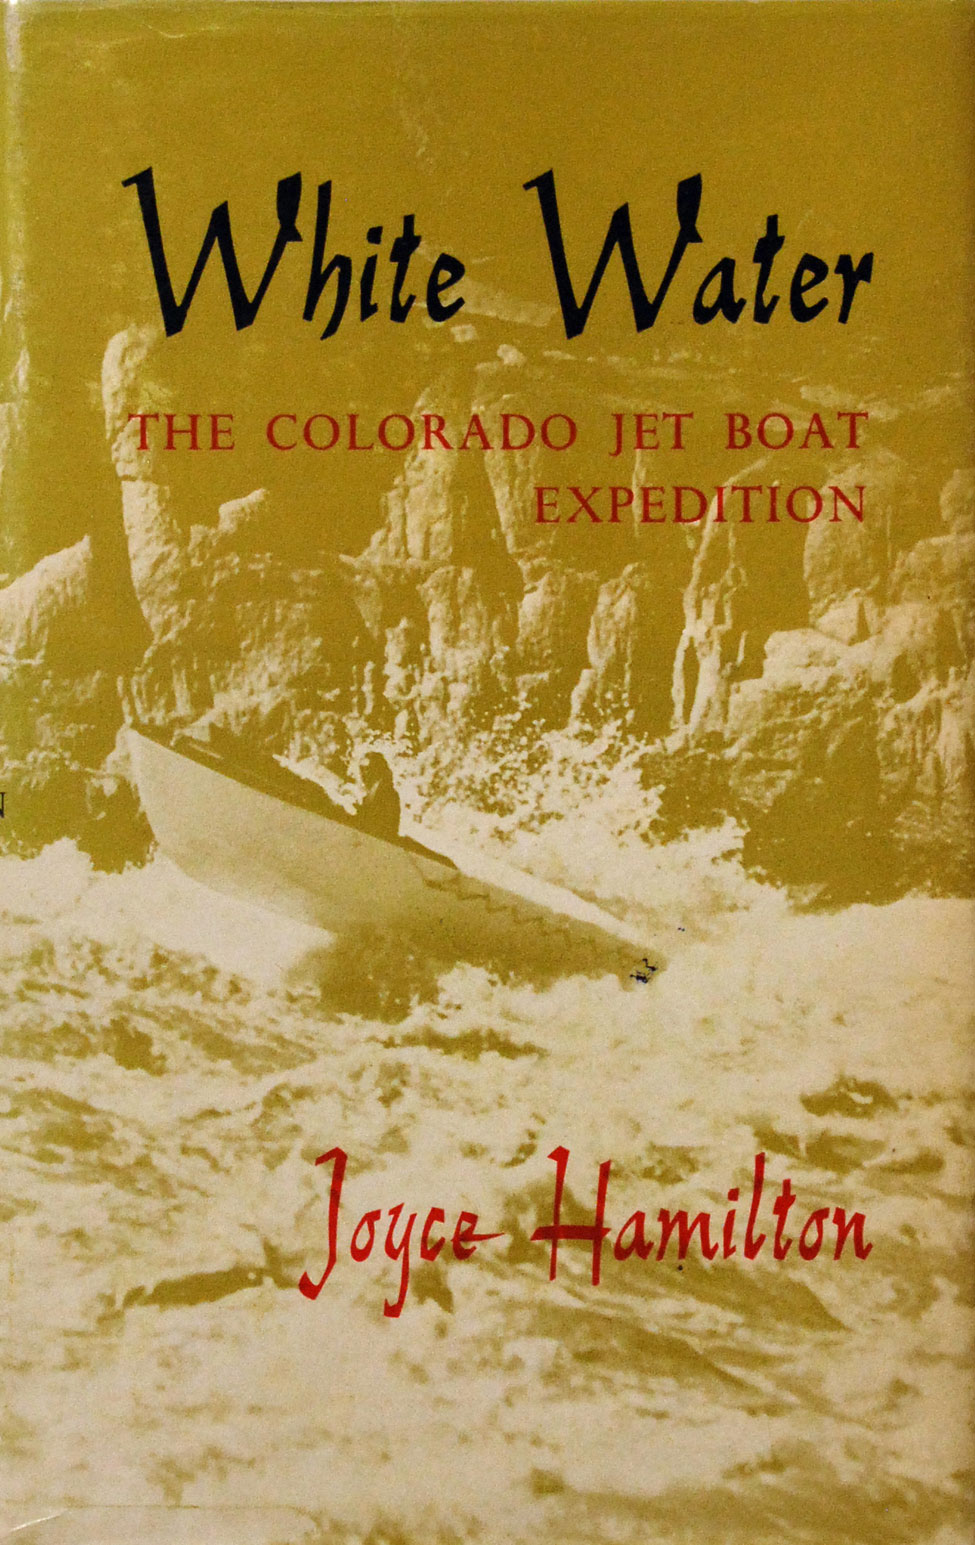 Joyce Hamilton. White Water: The Colorado Jet Boat Expedition 1960. <i>Christchurch: The Caxton Press, 1963.</i>